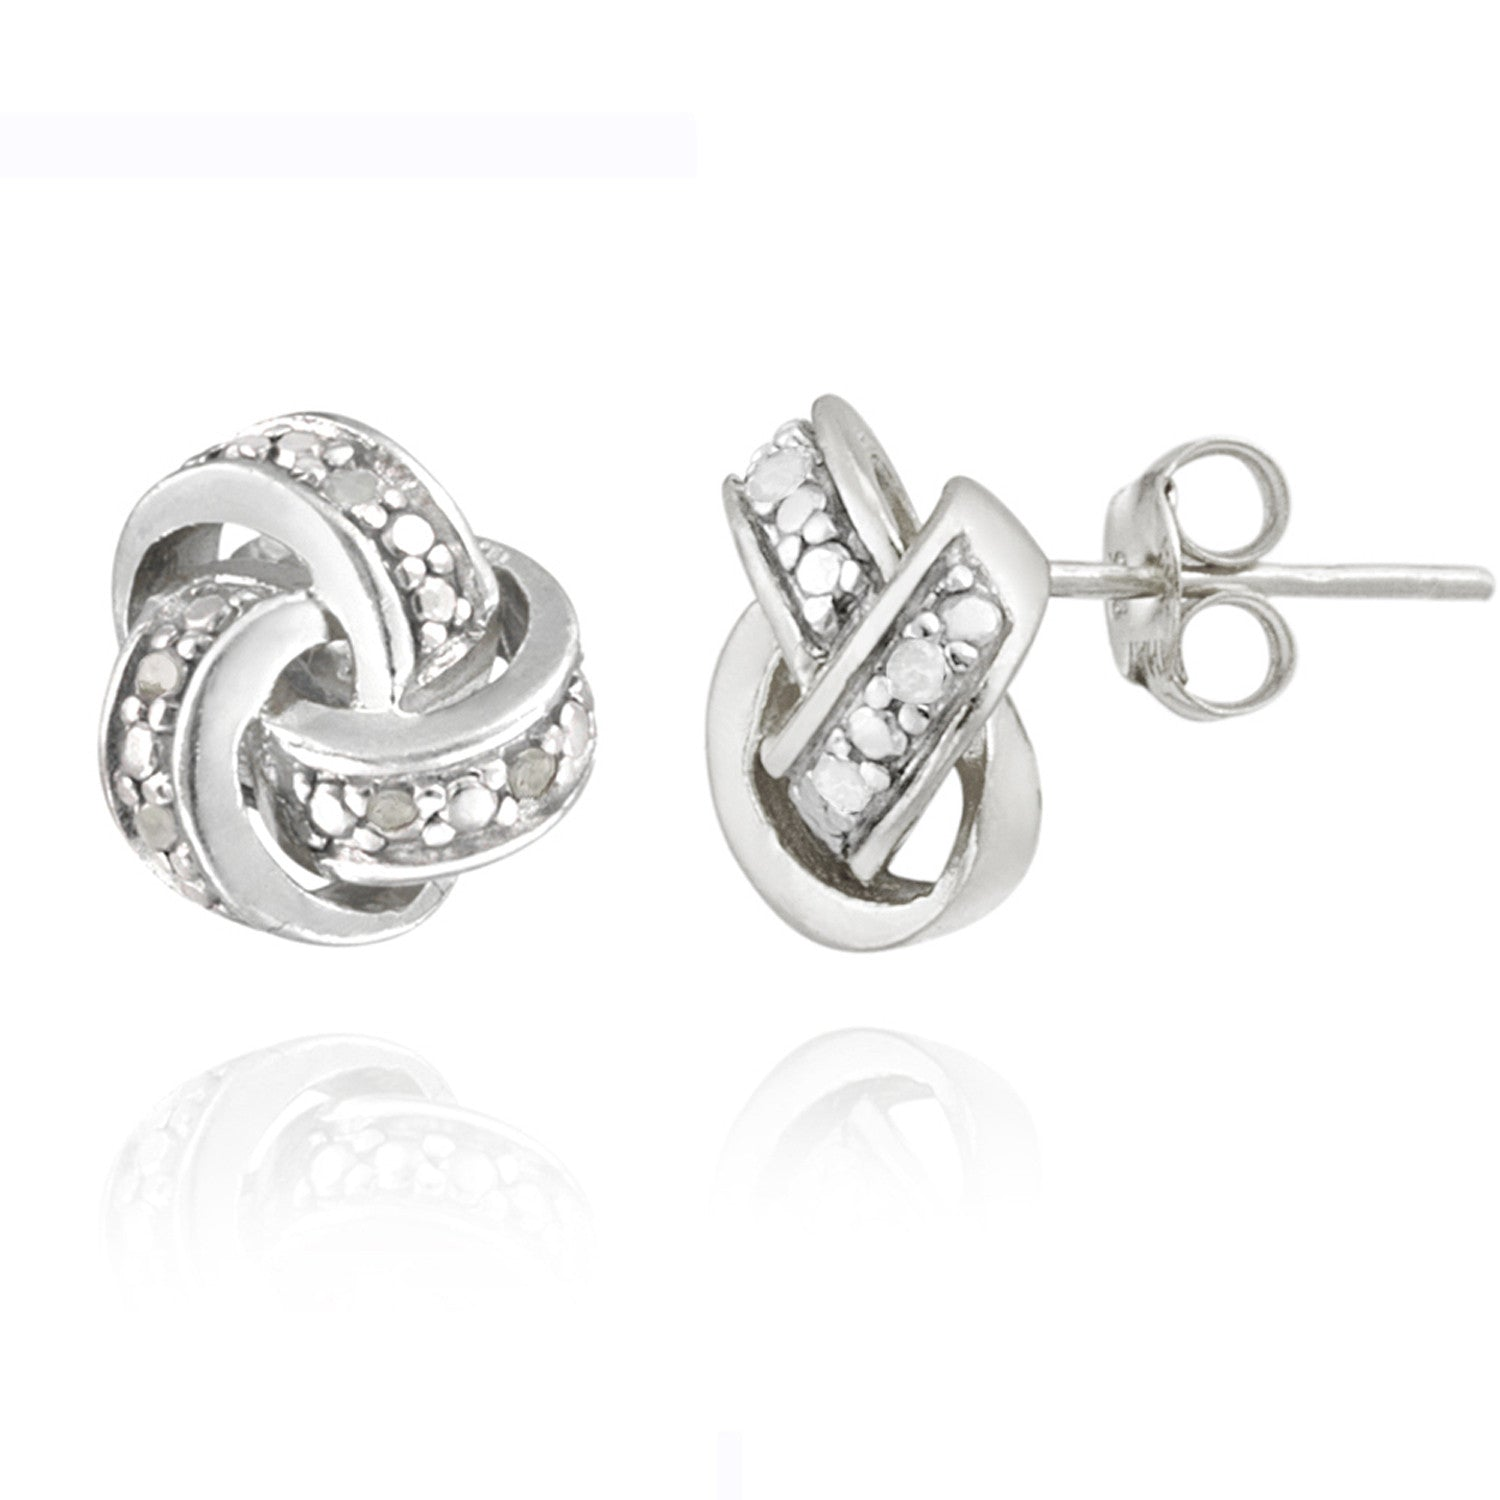 Diamond Accent Sterling Silver Love Knot Stud Earrings - Silver